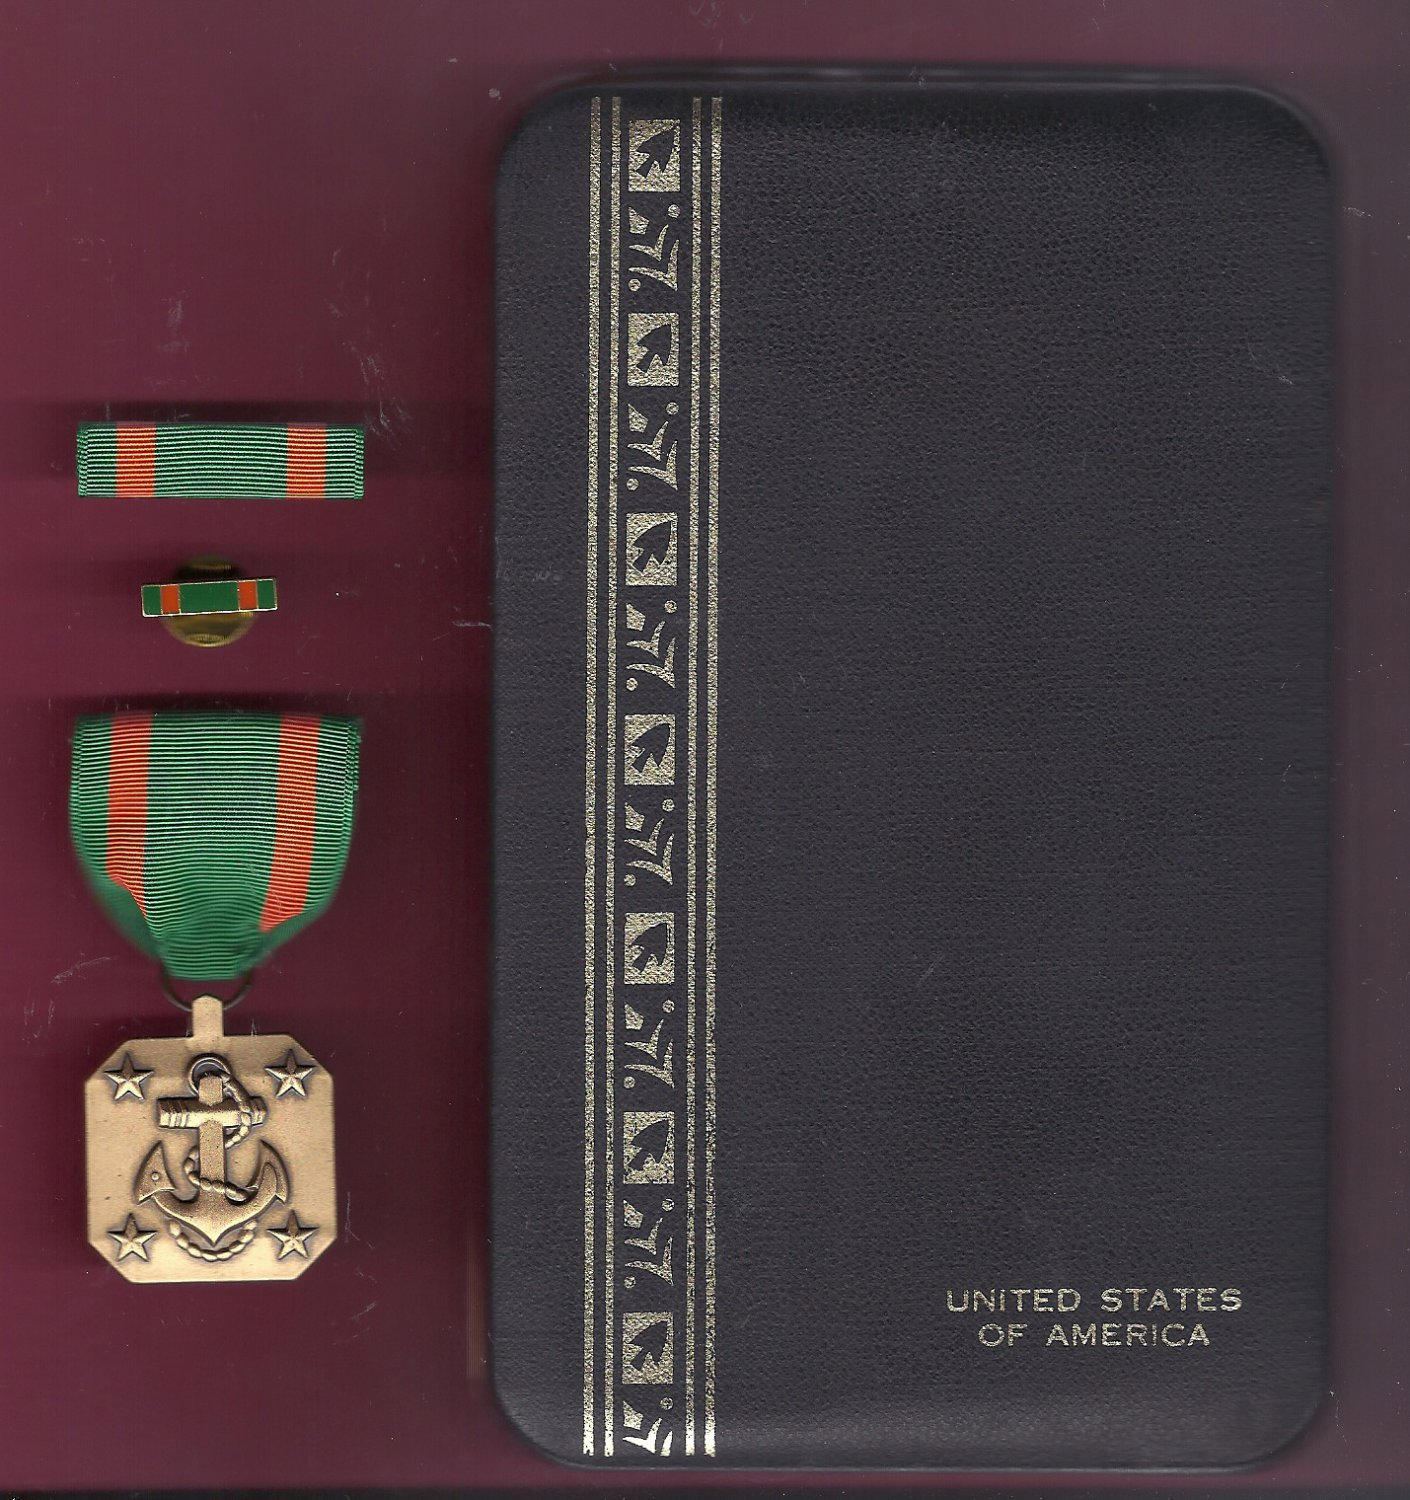 Navy and Marine Achievement medal in case with ribbon bar and lapel pin